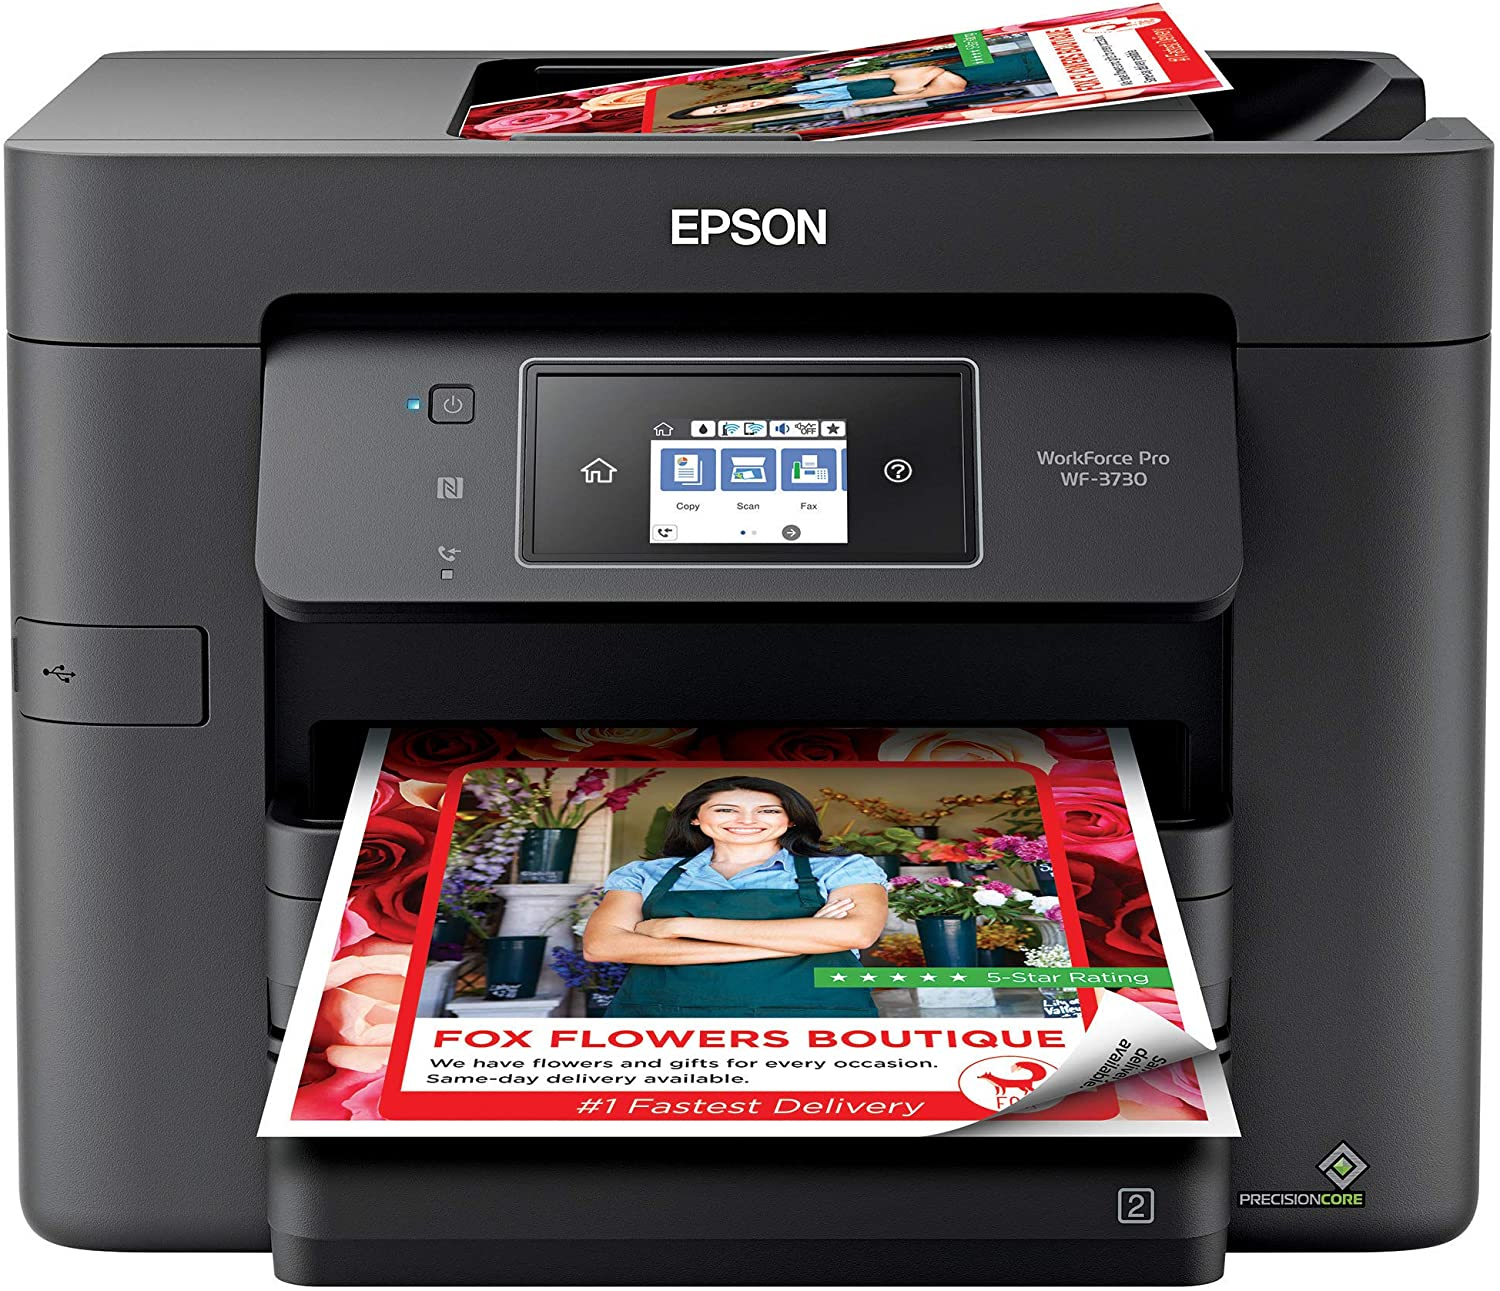 Epson WorkForce Pro WF-3730 All-in-One Wireless Color Printer